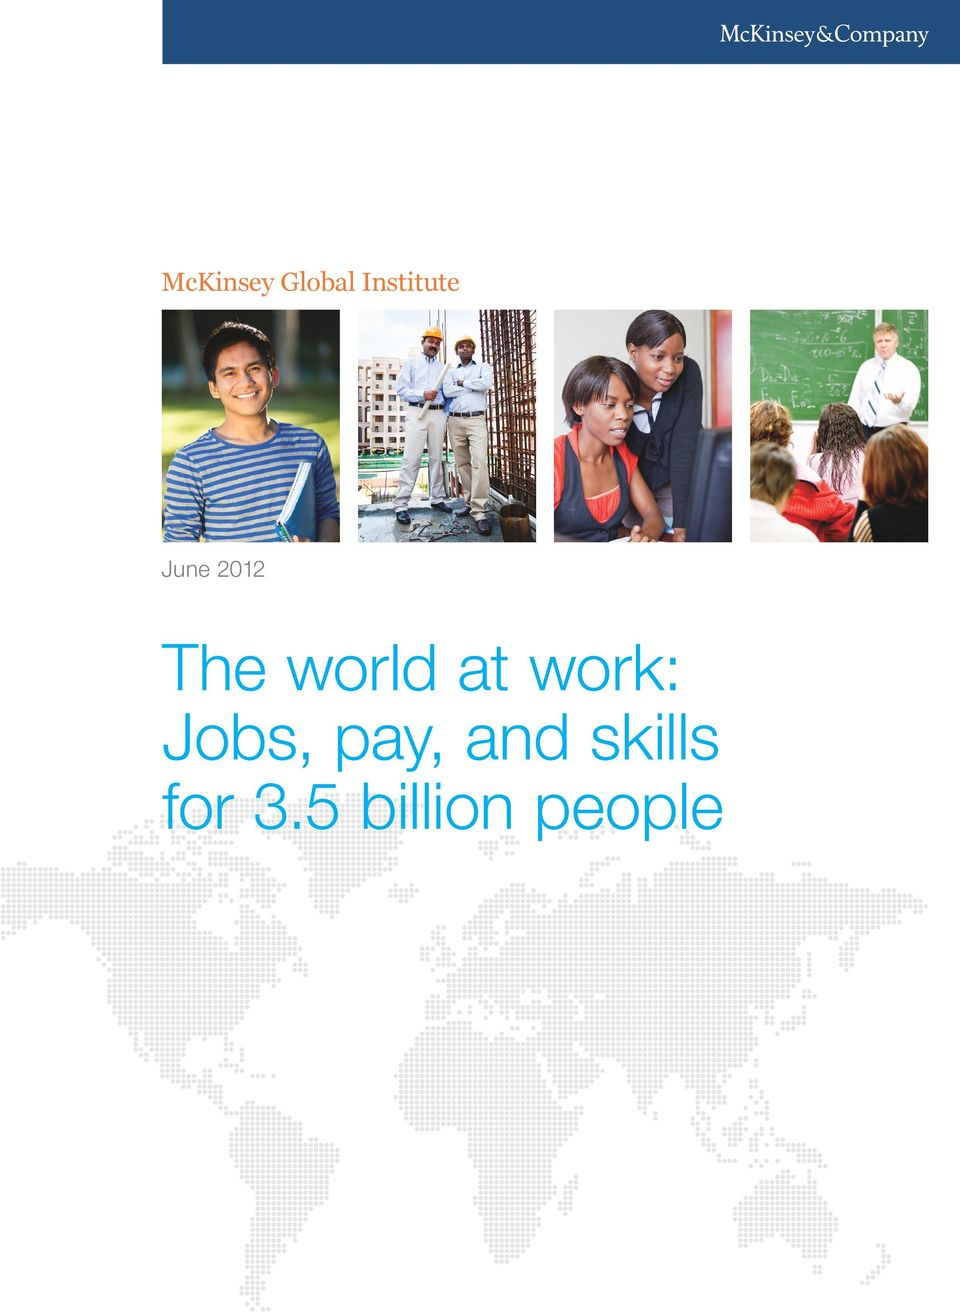 world at work: Jobs,